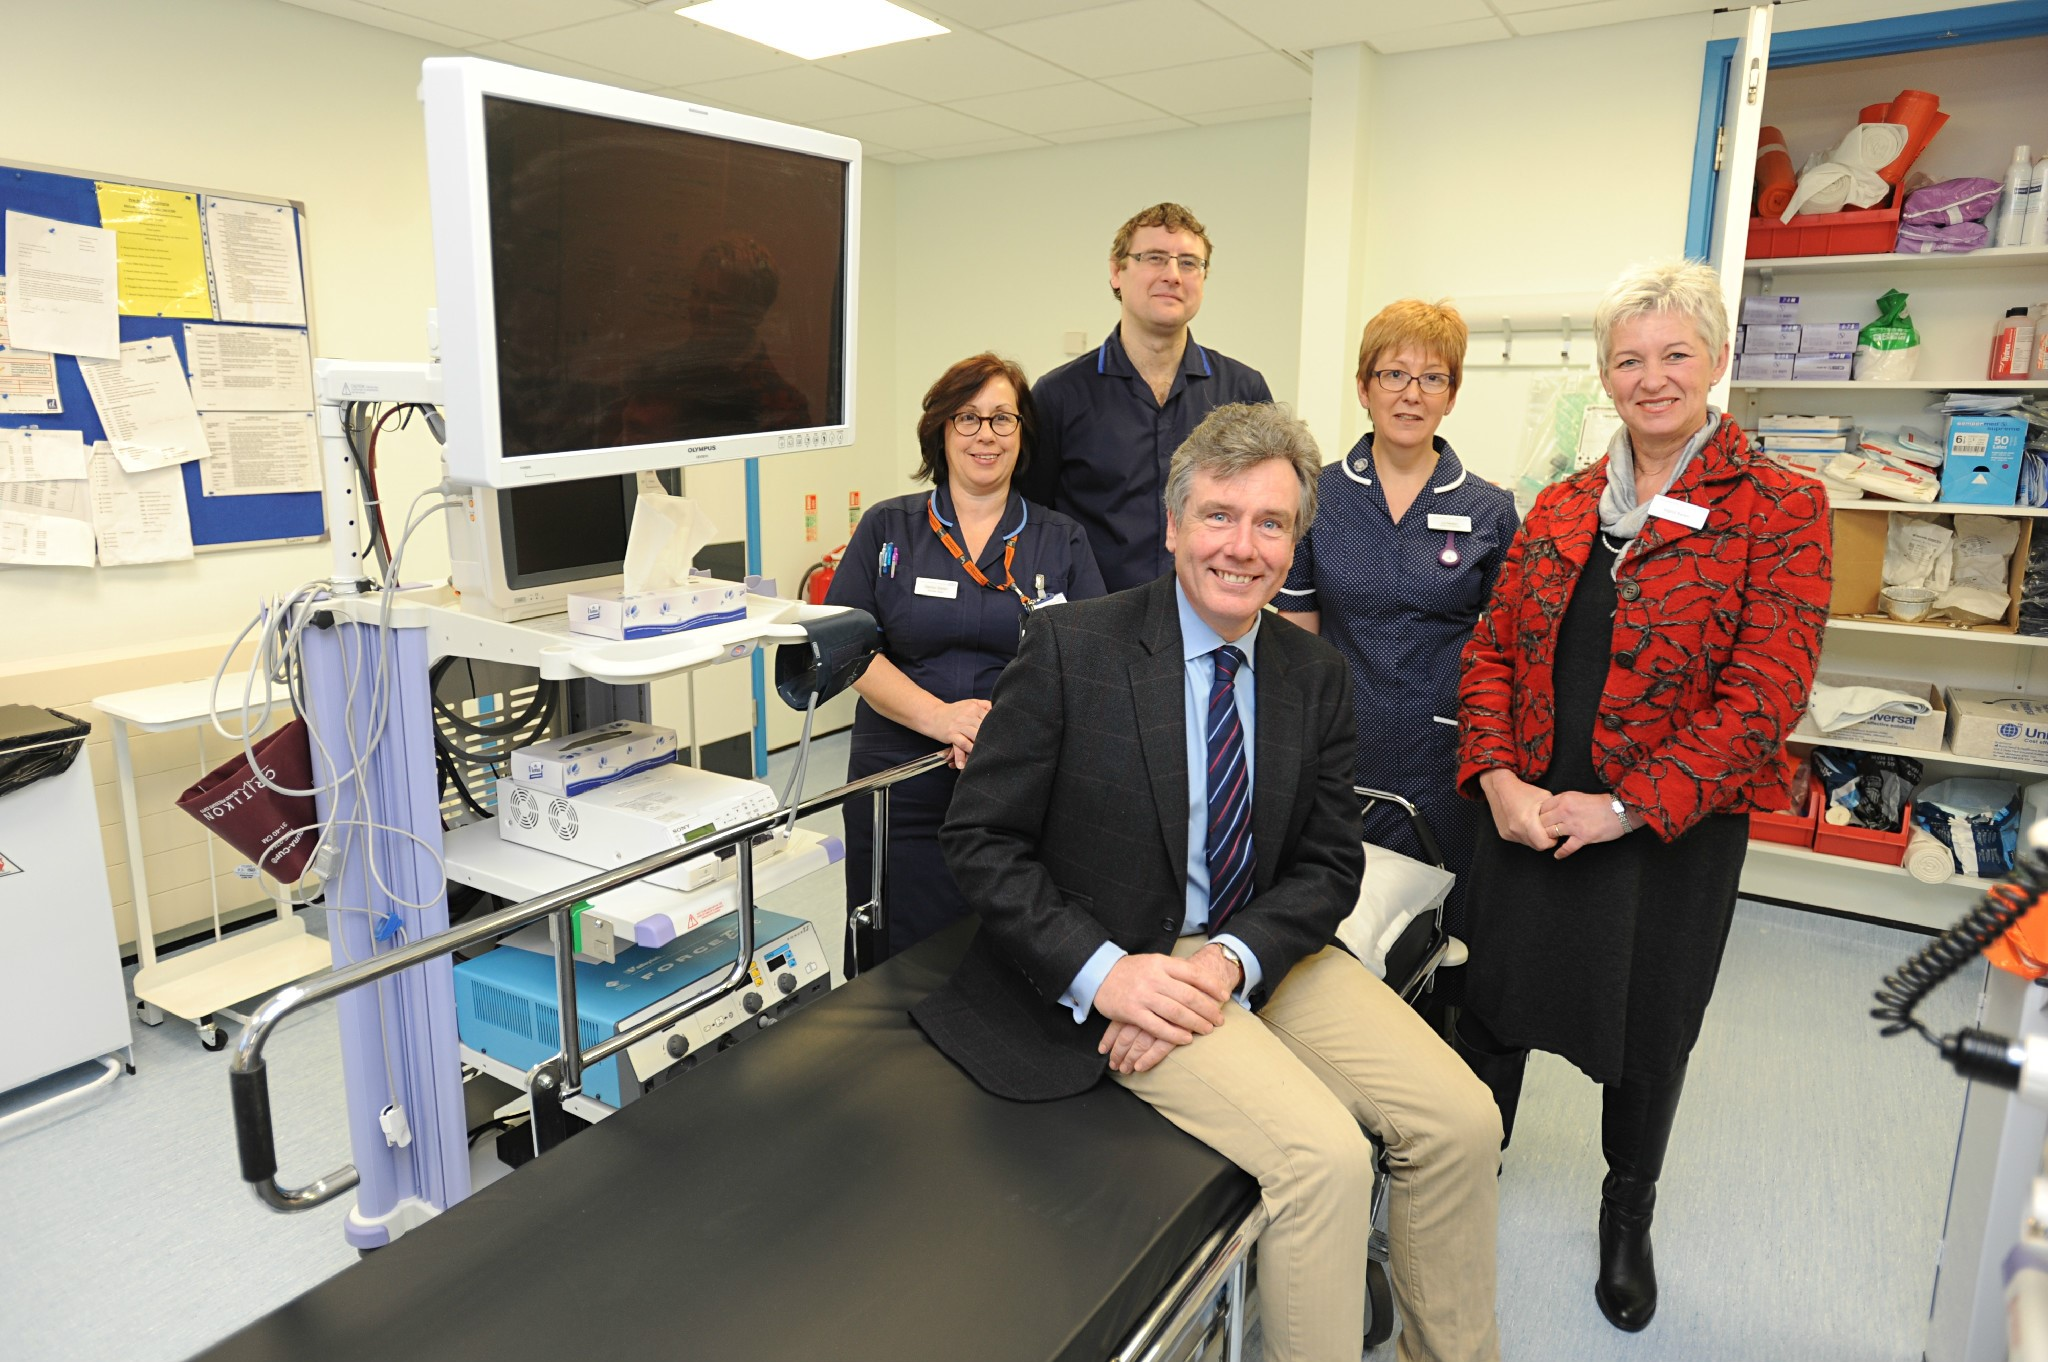 Stroud MP Neil Carmichael (front) visits staff at Stroud Hospital to d